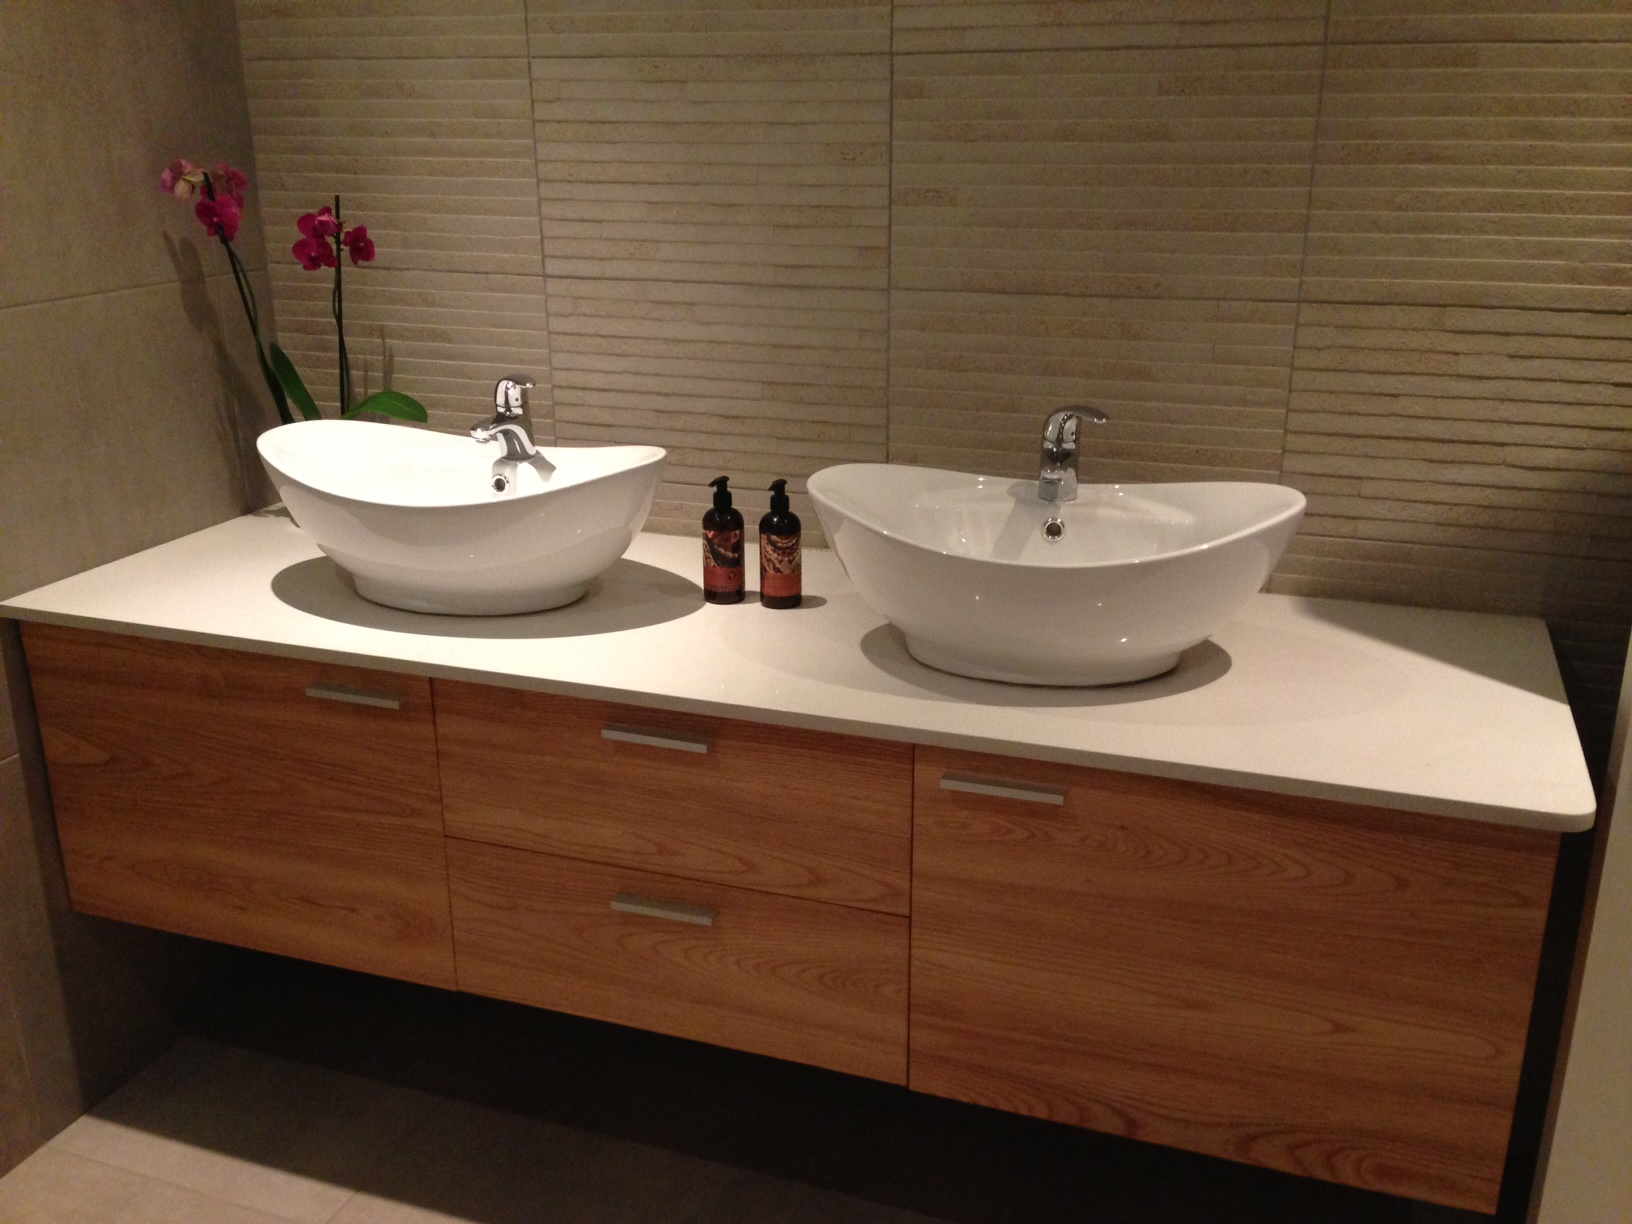 Bathroom Vanity .Co.Za the goodwood co double sink contemporary vanity - the goodwood co